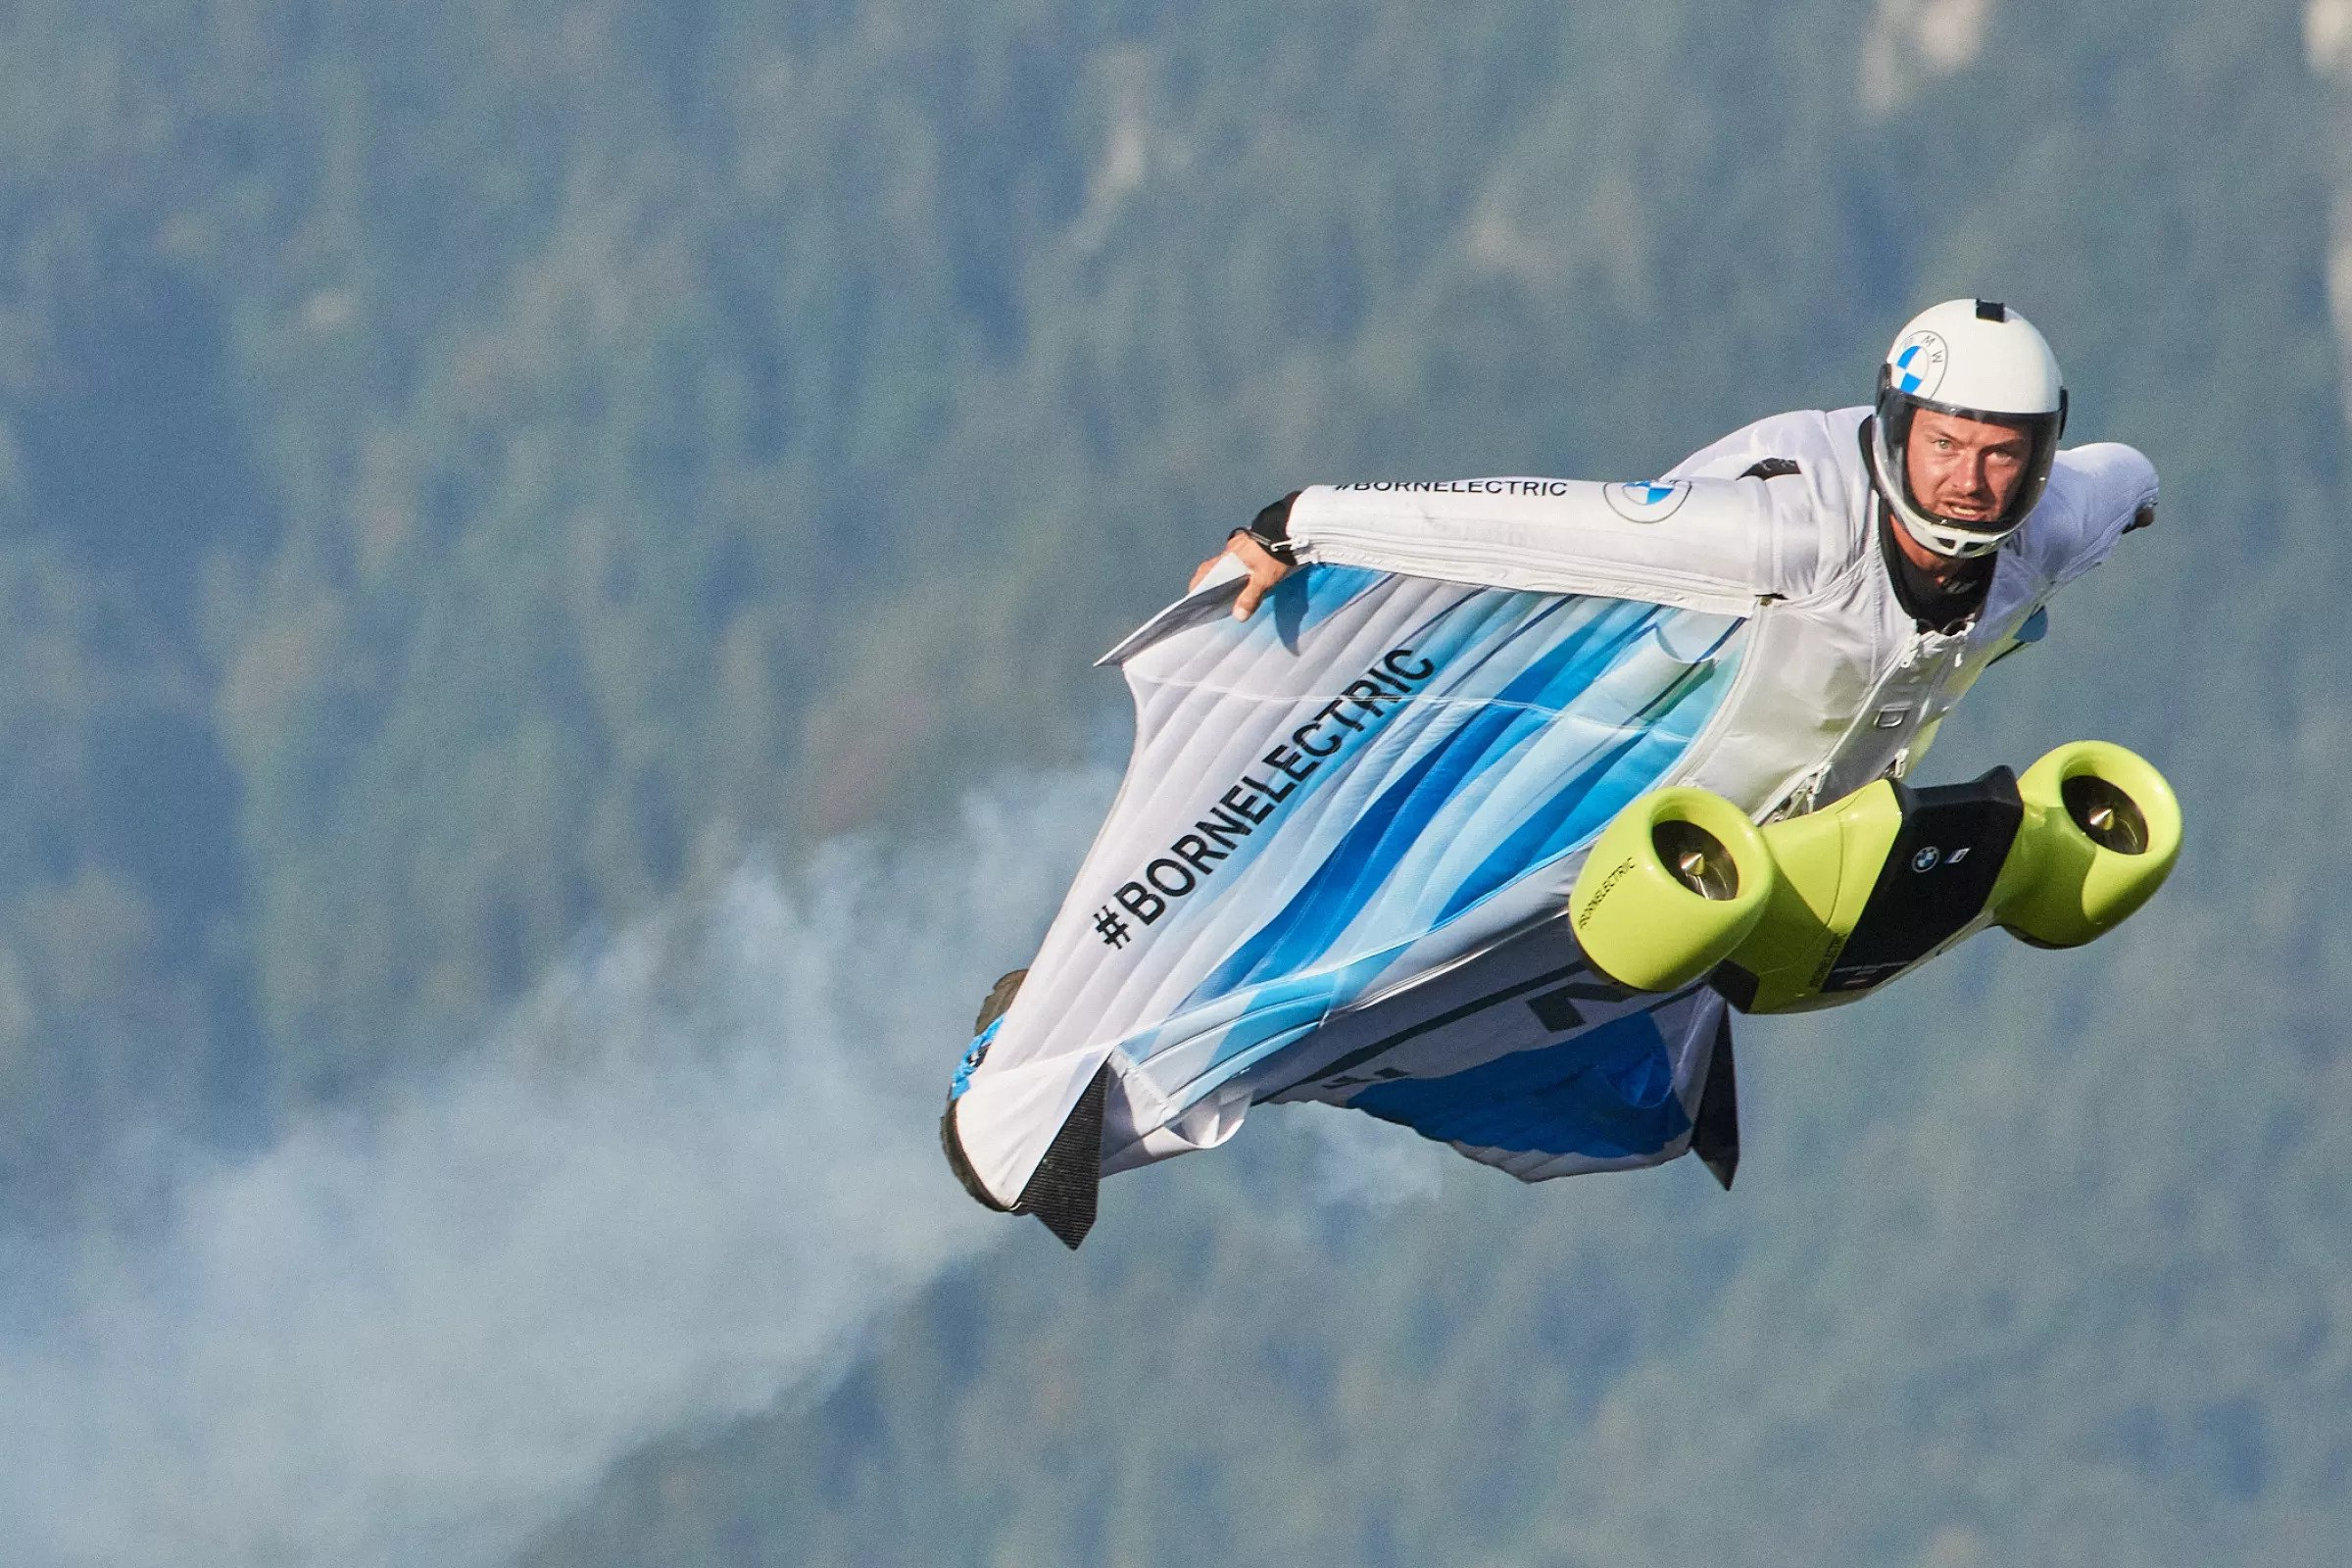 Austrian Stuntman Puts World's First Electric Wingsuit To Test